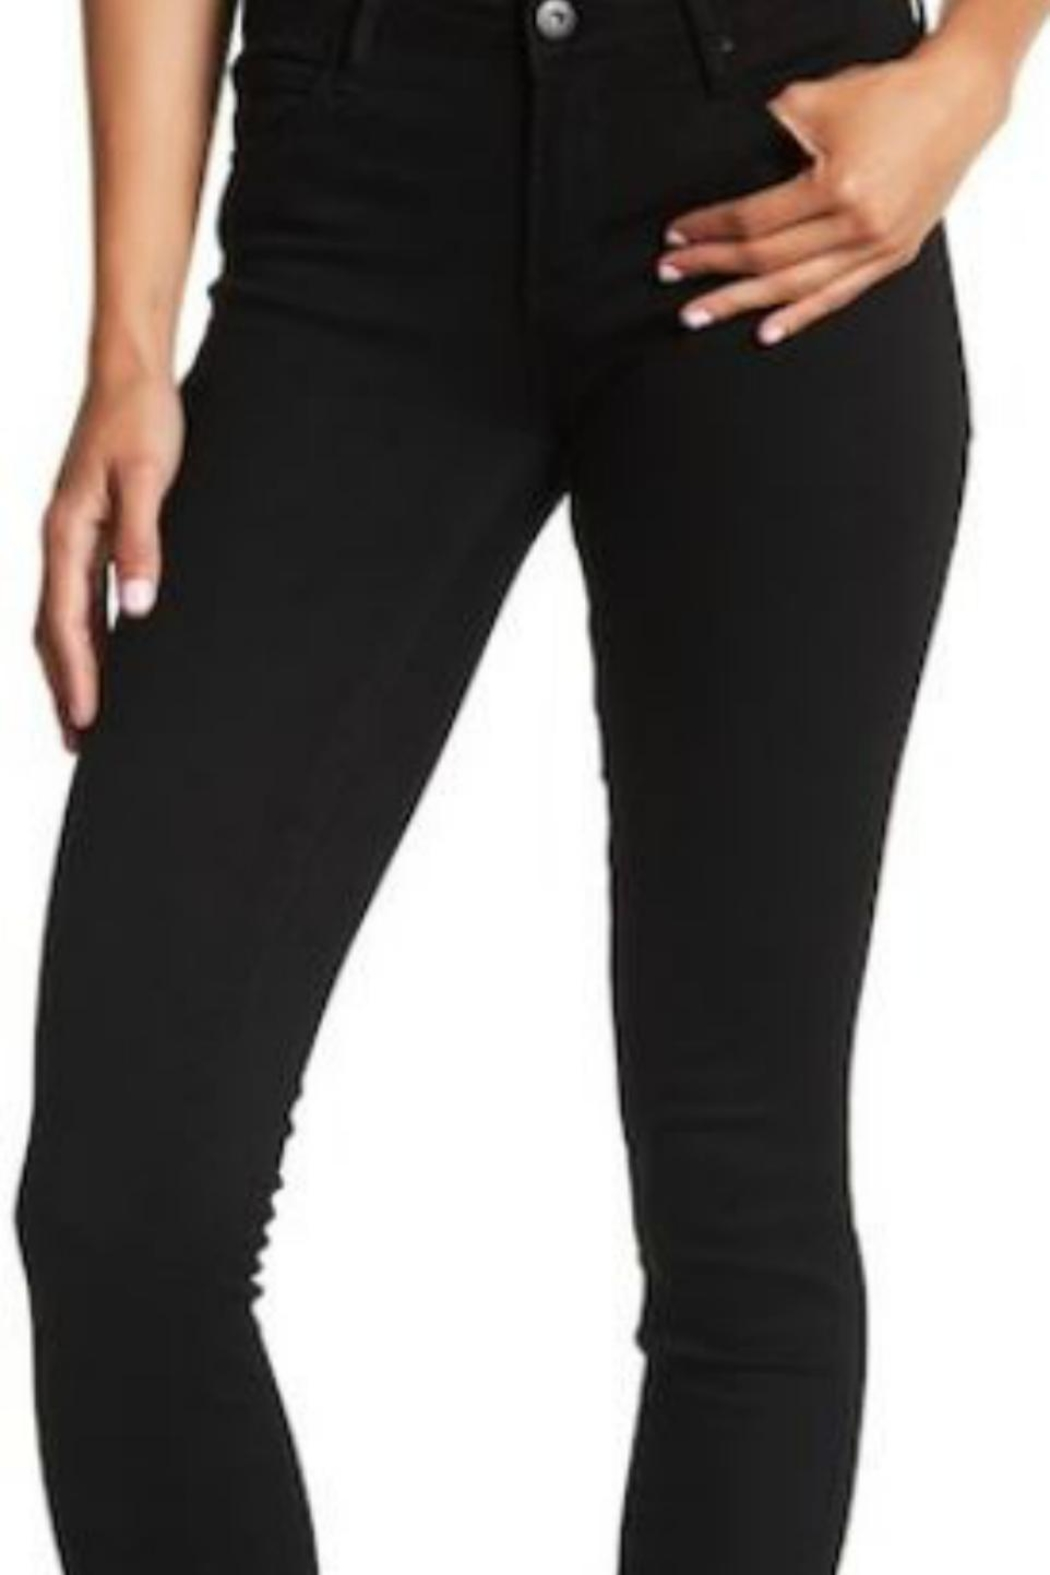 Articles of Society Black Skinny Jeans - Main Image